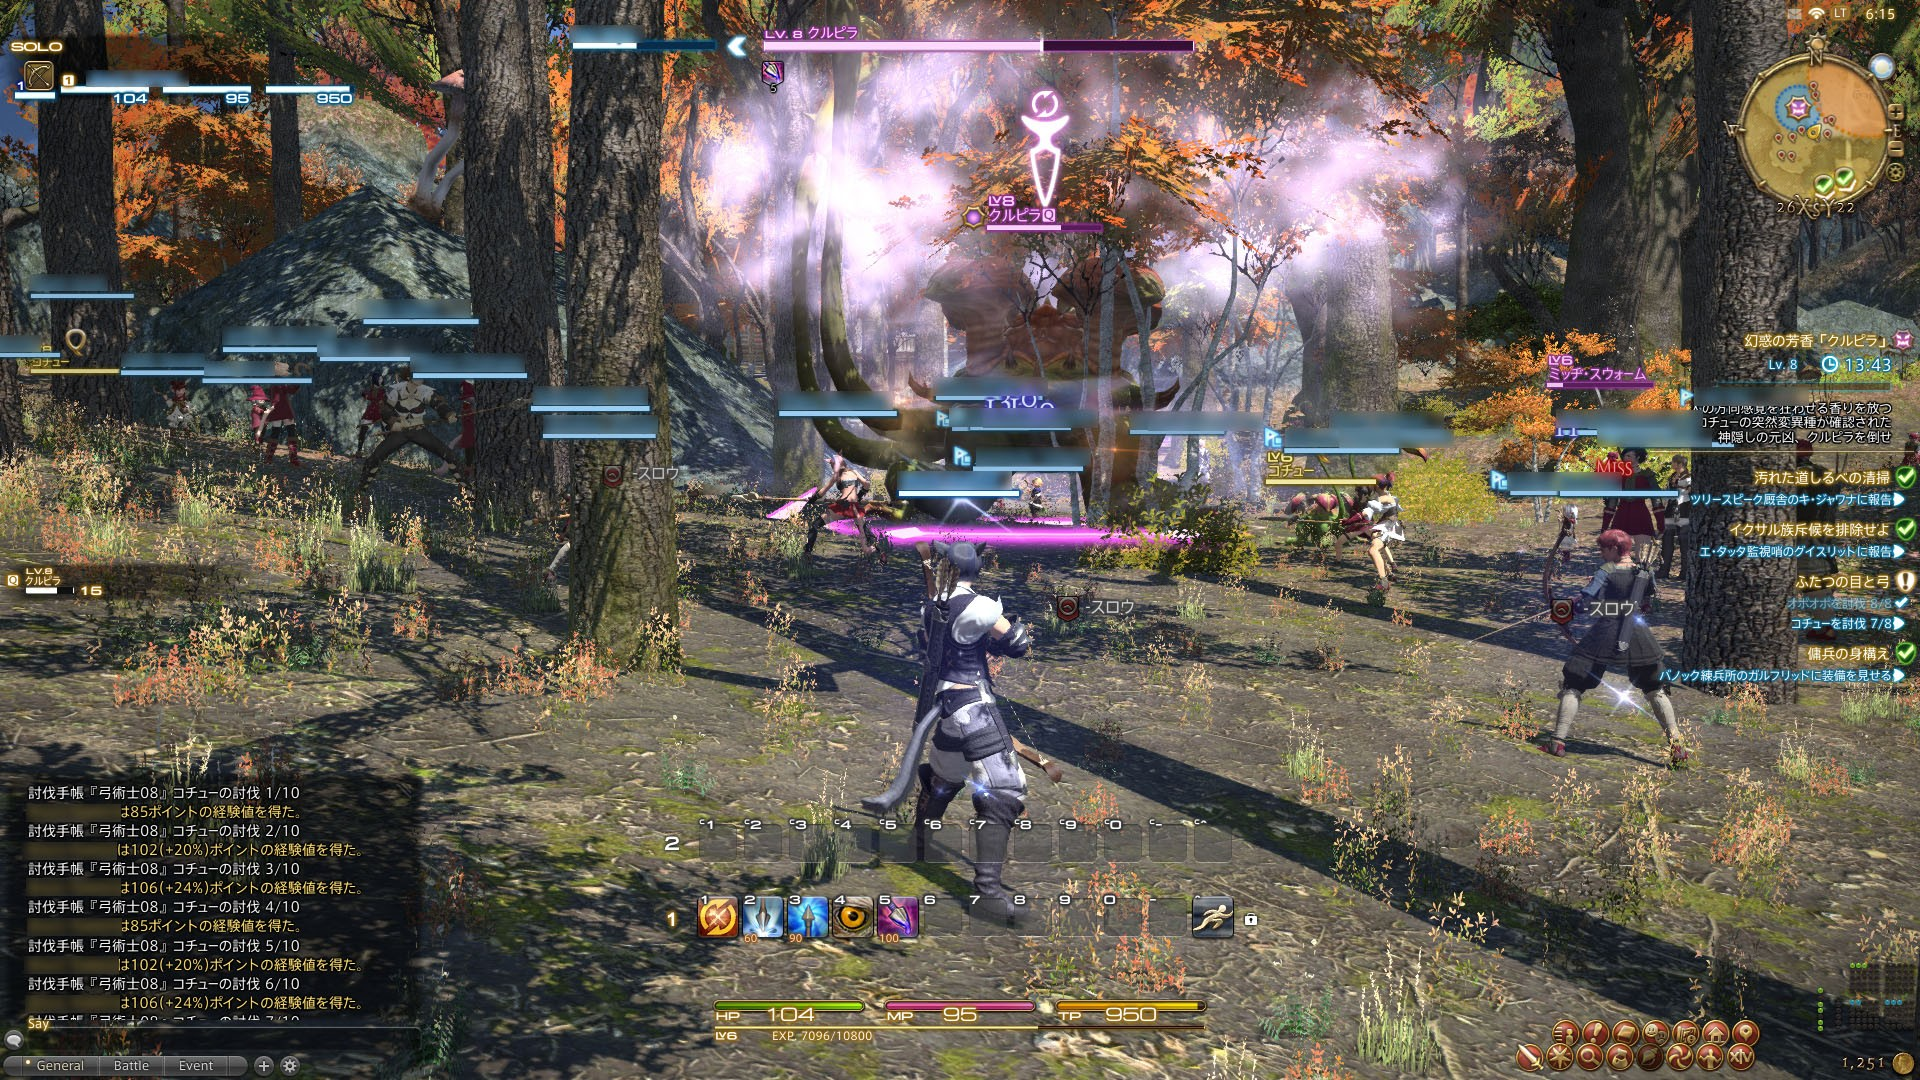 Final Fantasy XIV: A Realm Reborn Login Issues Caused by